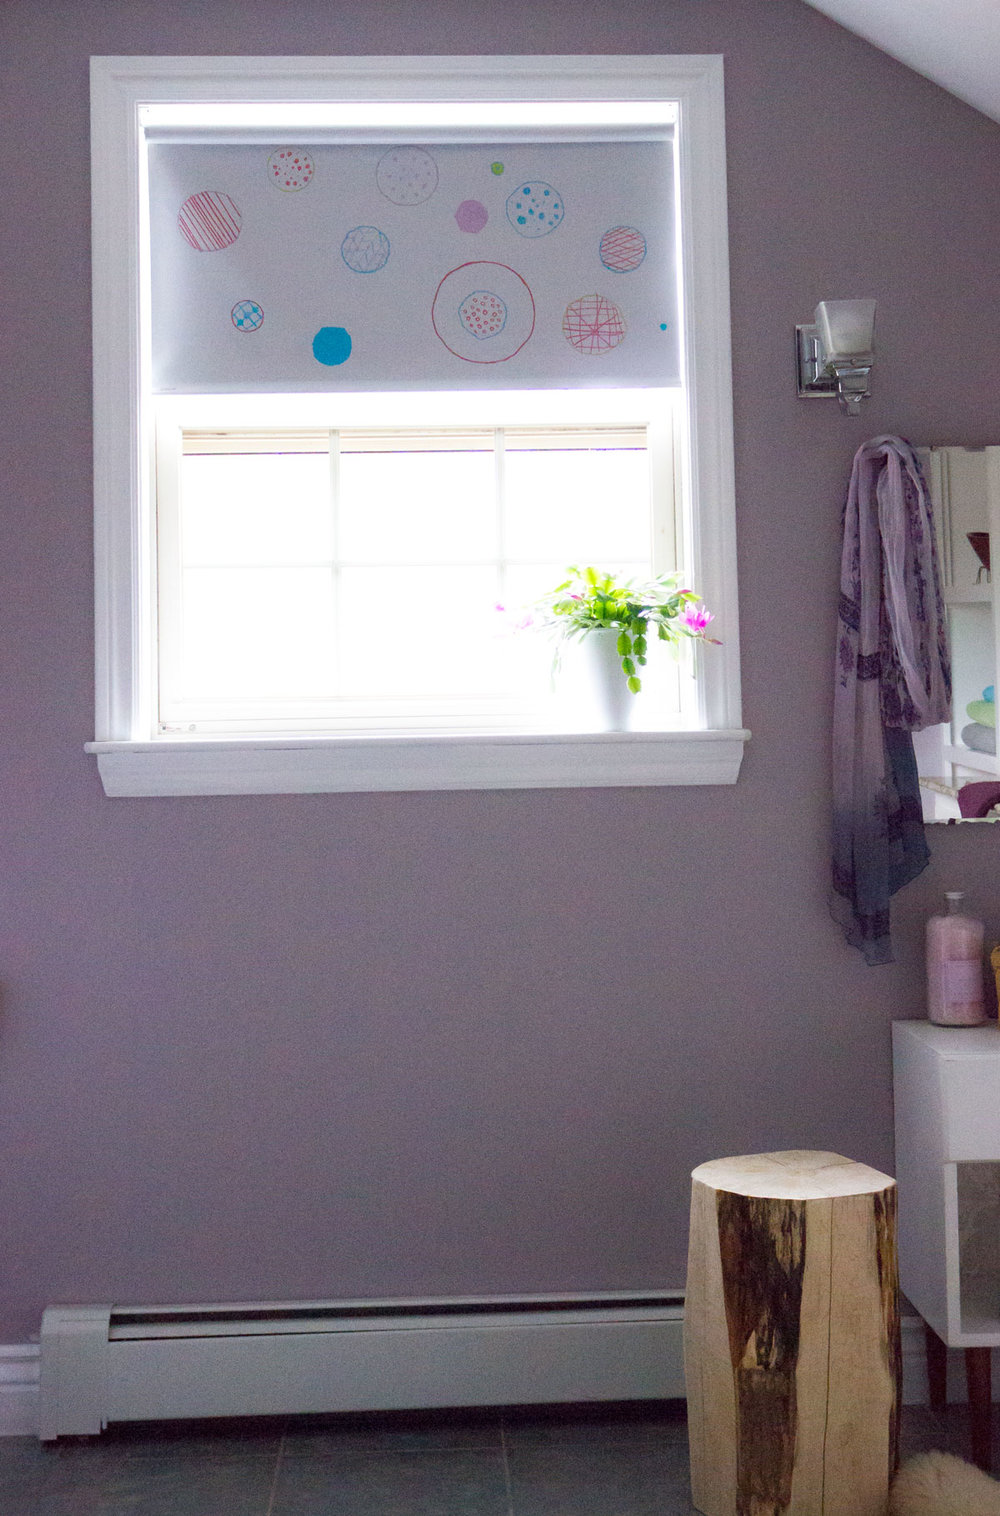 budget roller blind painted with polka dots for girls room